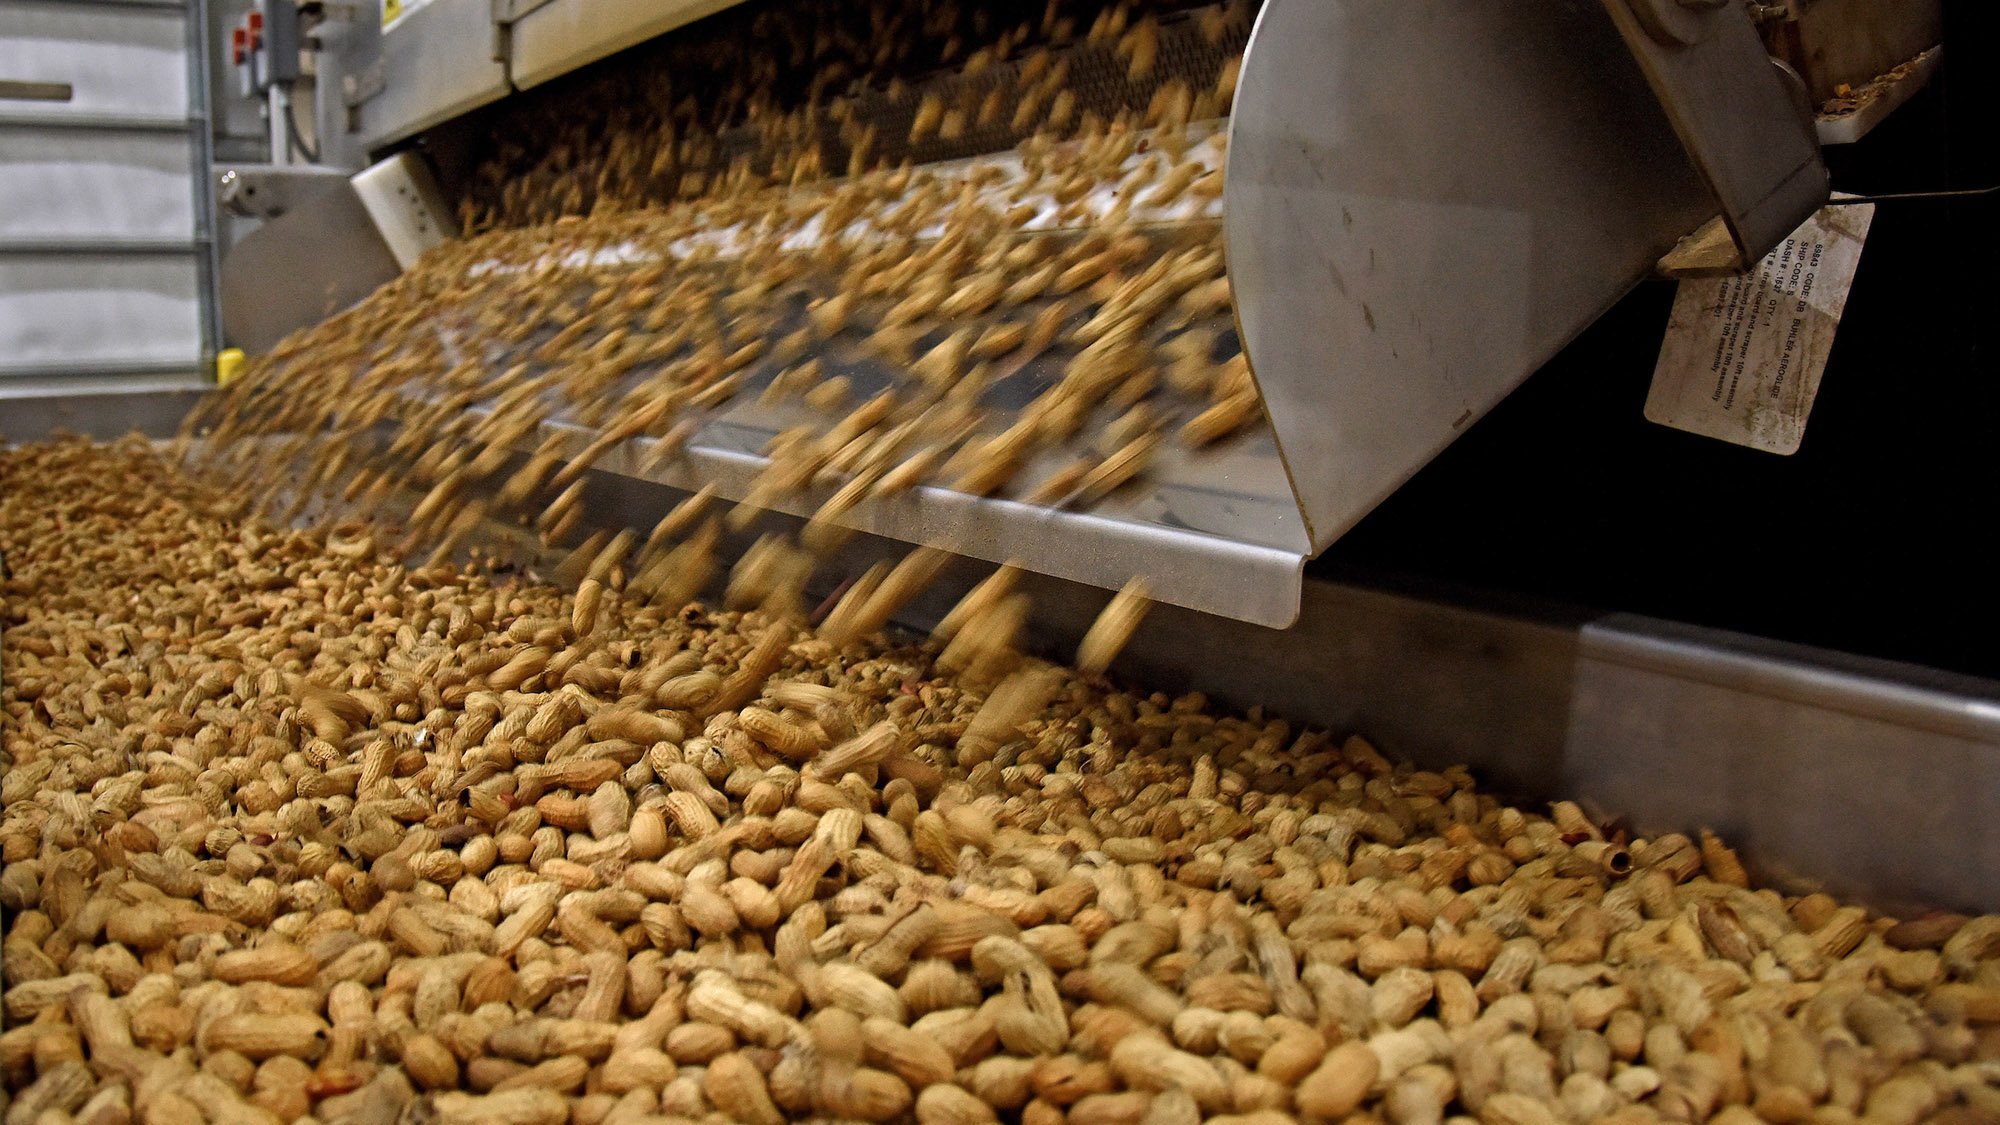 Sorted peanuts fall onto a conveyor belt in a packing facility in North Carolina.